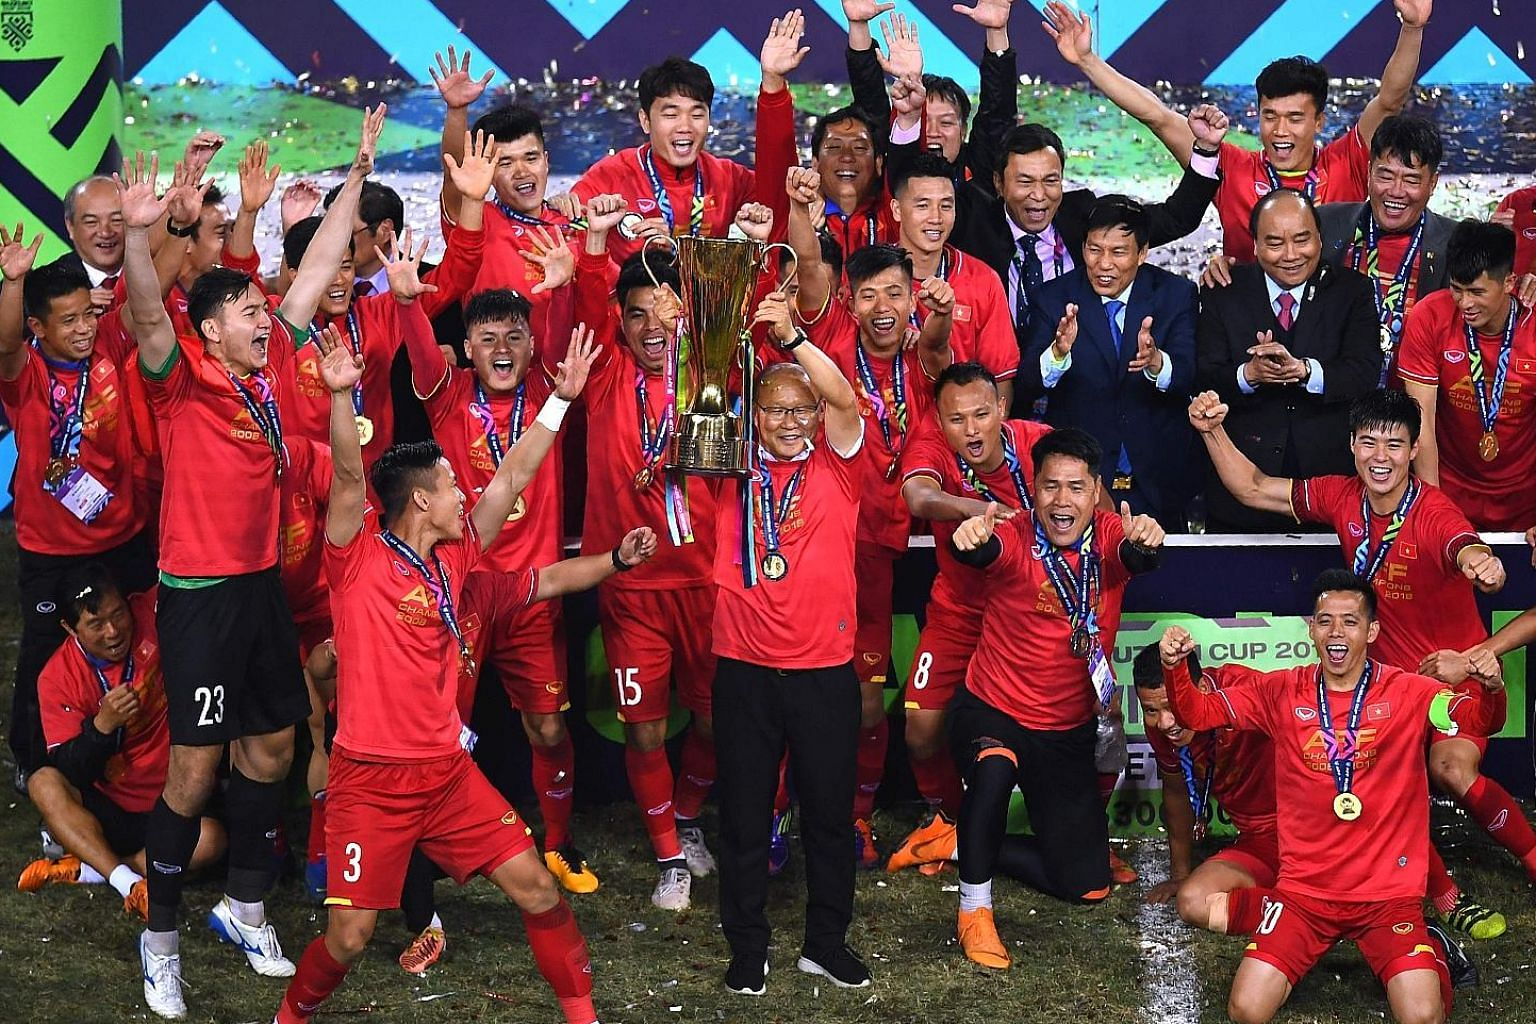 Vietnam's coach Park Hang-seo (centre) holding the trophy as the players and Vietnamese Prime Minister Nguyen Xuan Phuc (second from right in black suit) celebrate after winning the AFF Suzuki Cup last night. Vietnam defeated Malaysia 1-0 (3-2 on agg